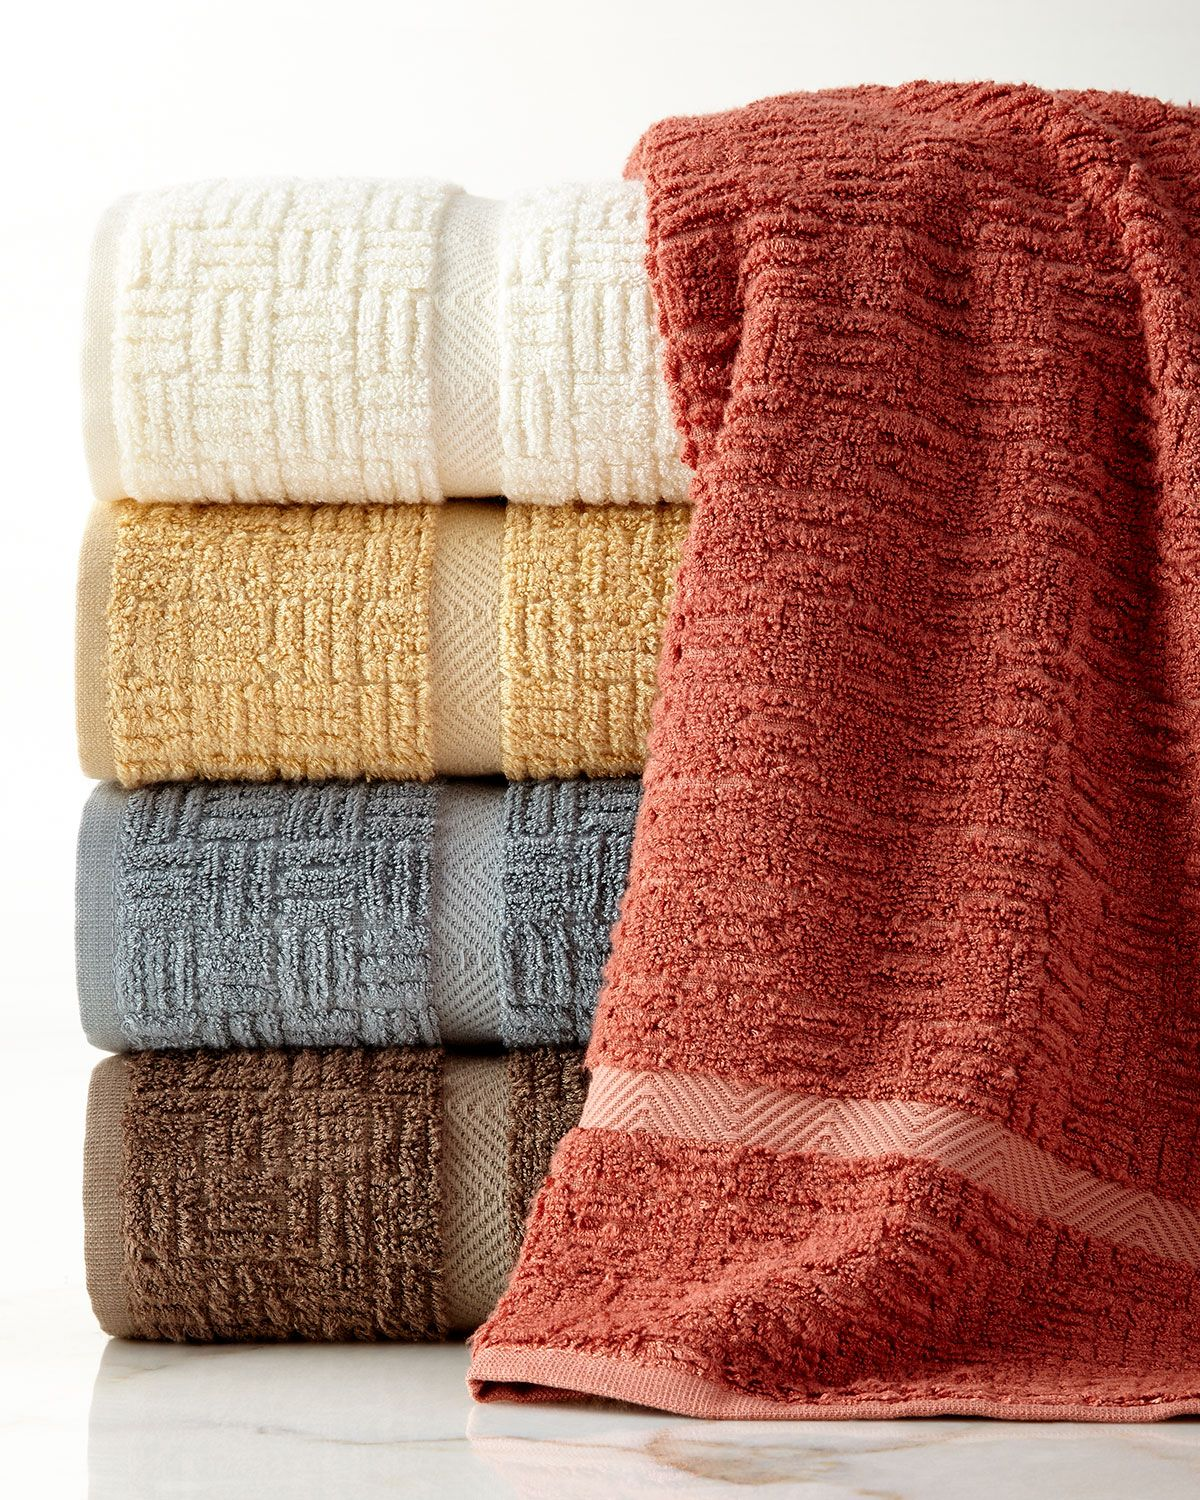 How to Choose the Best Bath Towel Best bath towles